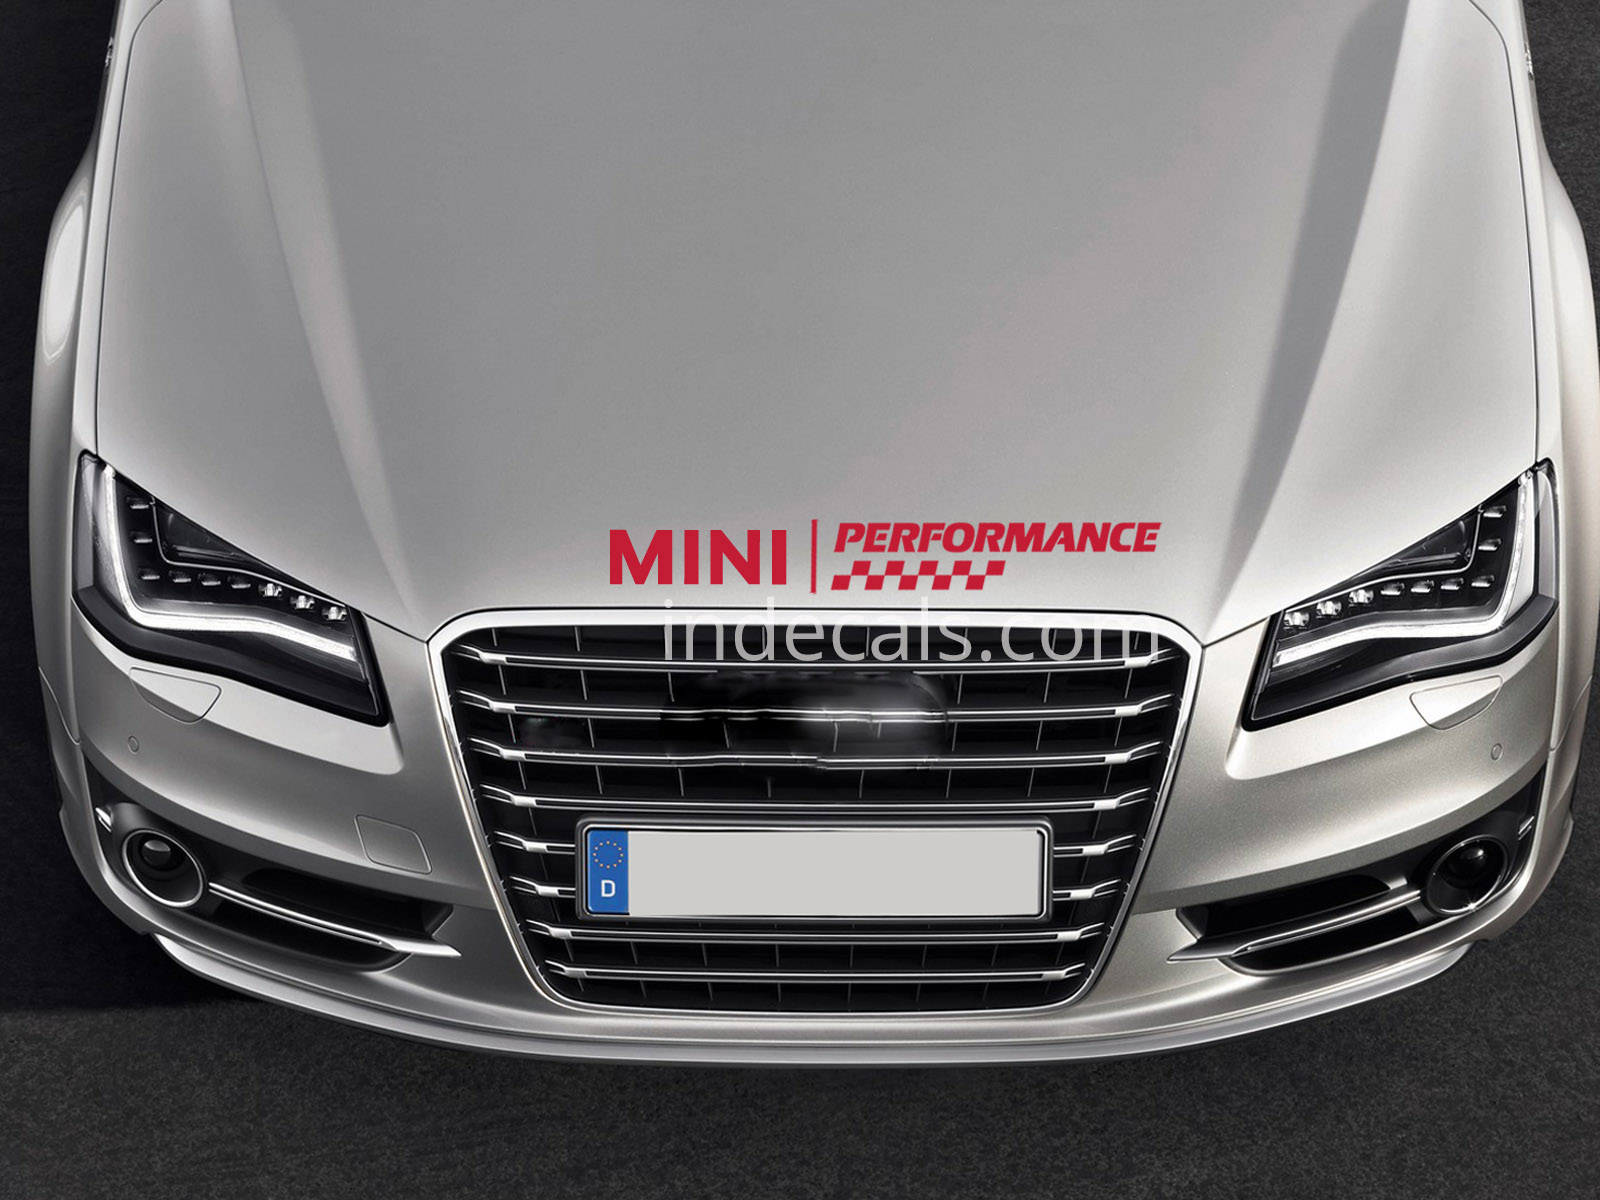 1 x Mini Performance Sticker for Bonnet - Red